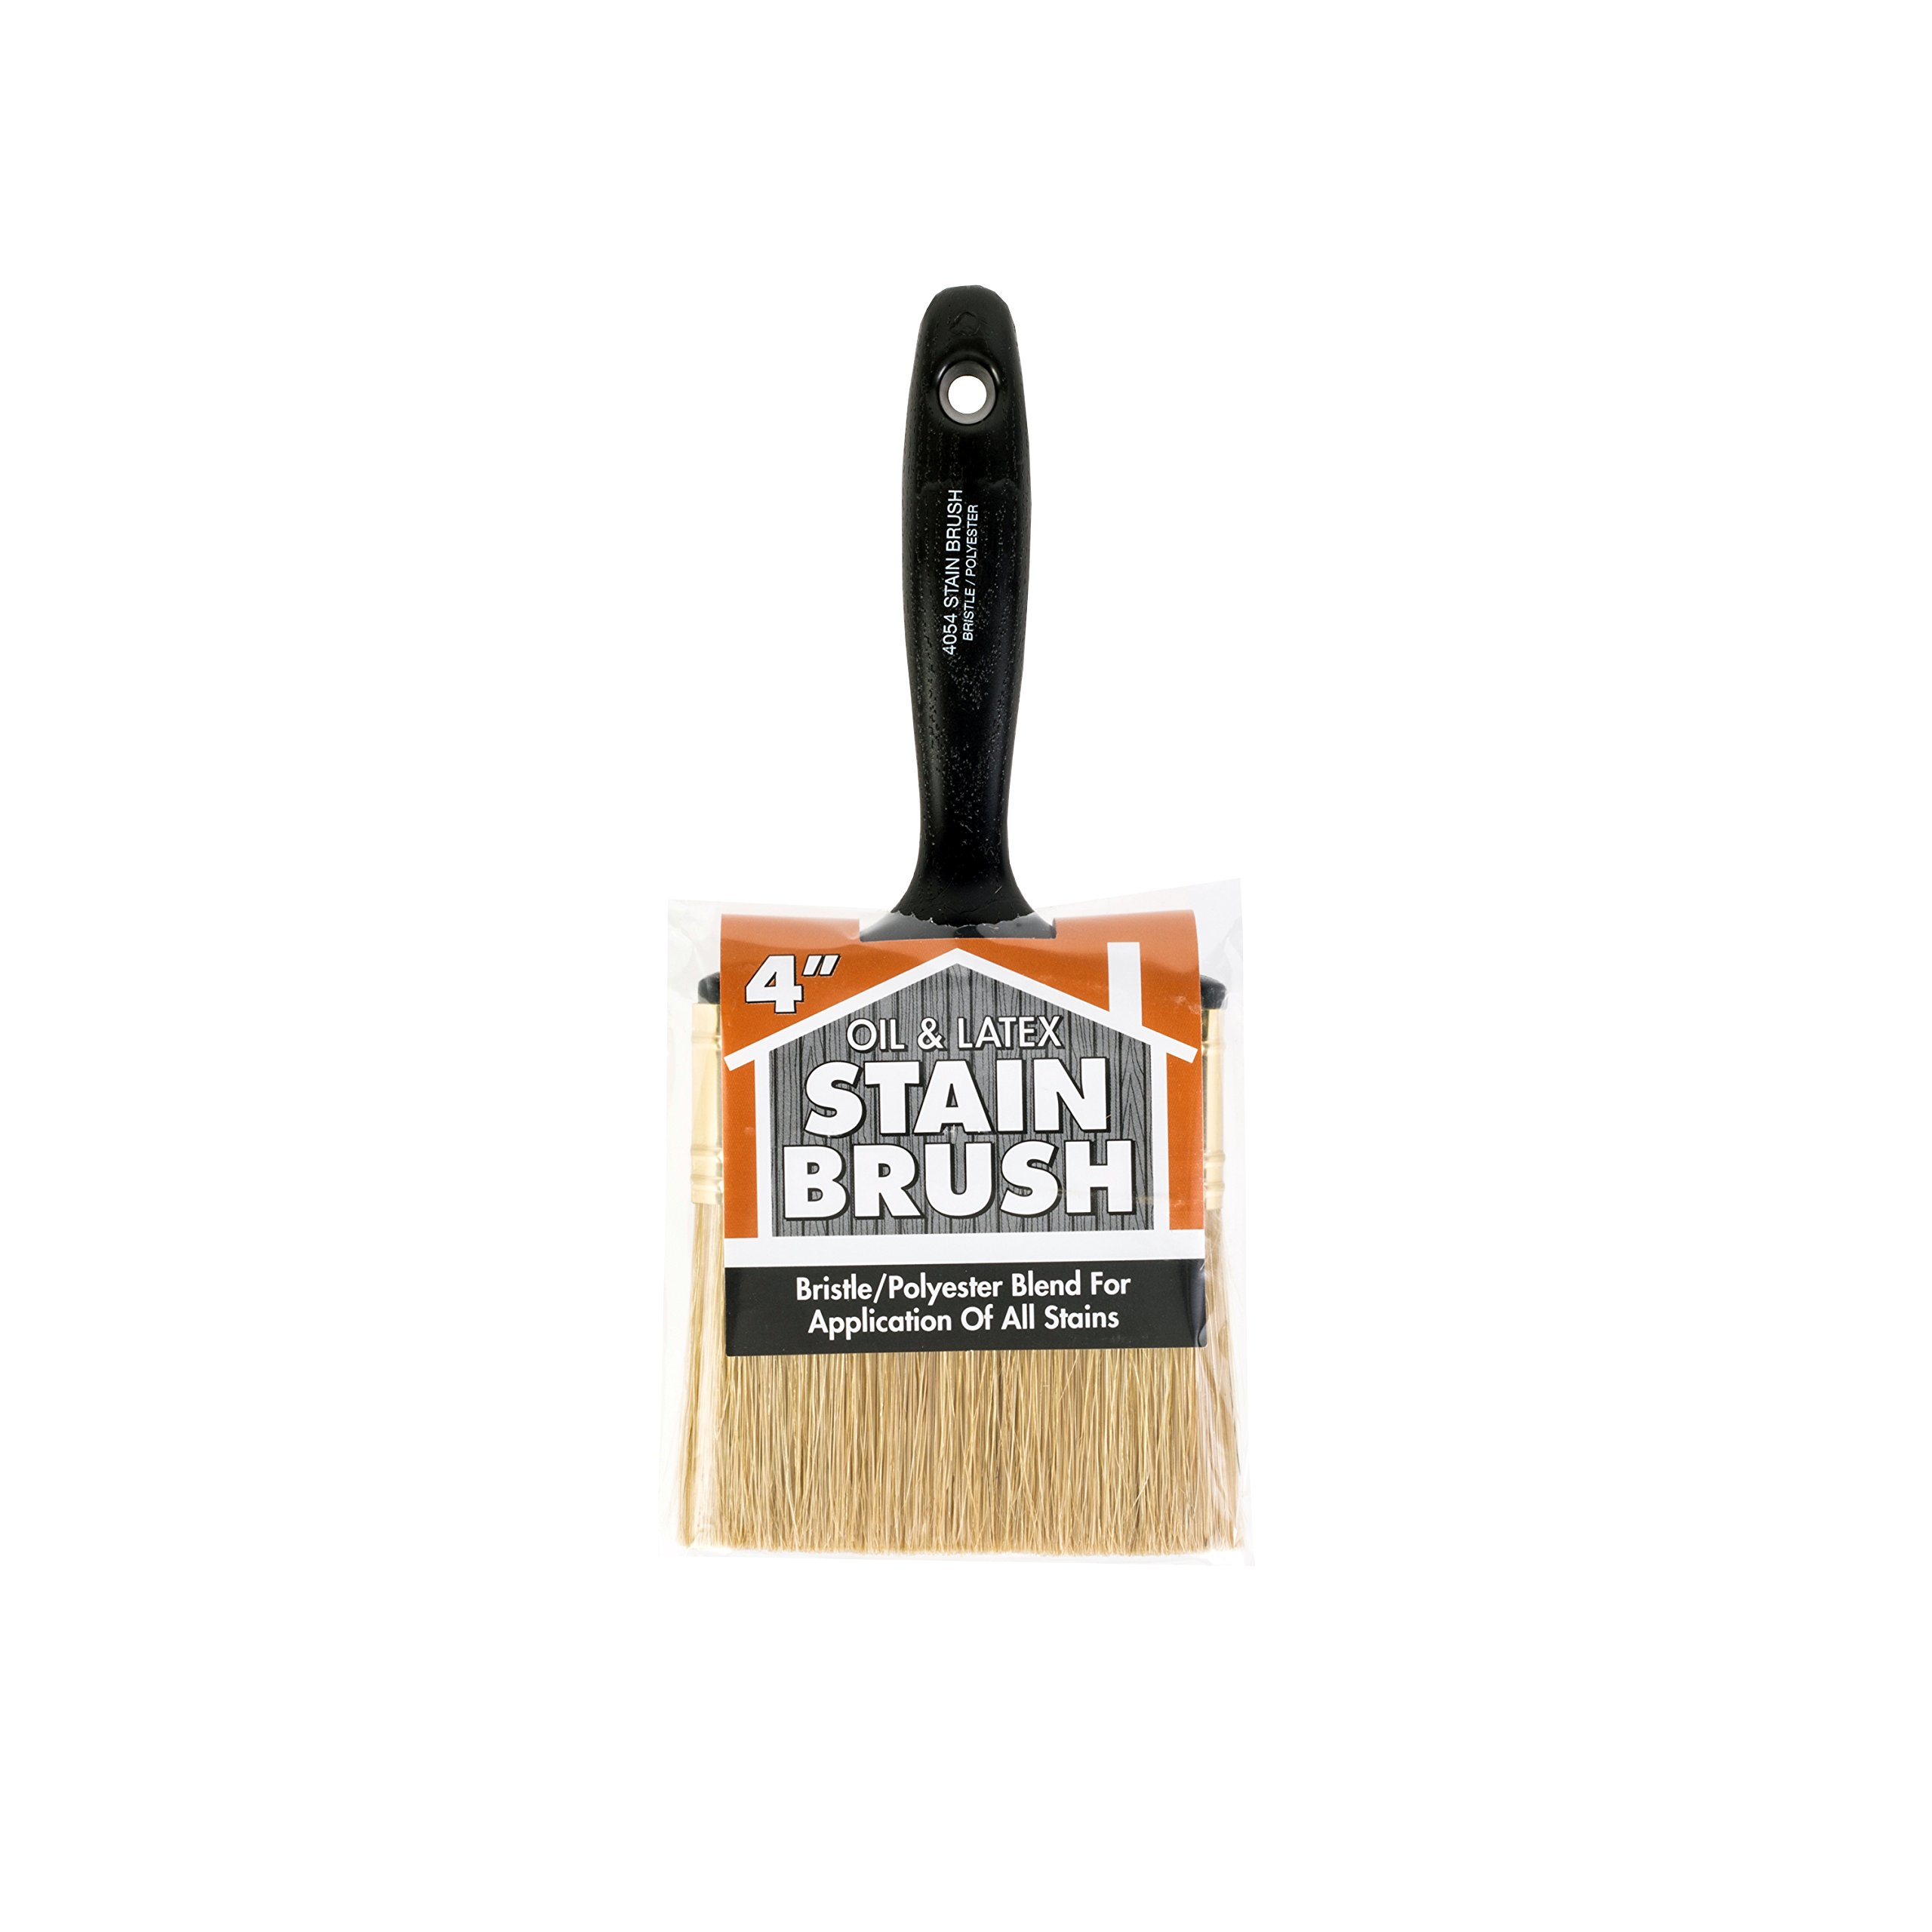 Wooster Brush Company 4054 2 Oil and Latex Stain Brush, 4-Inch by Wooster Brush